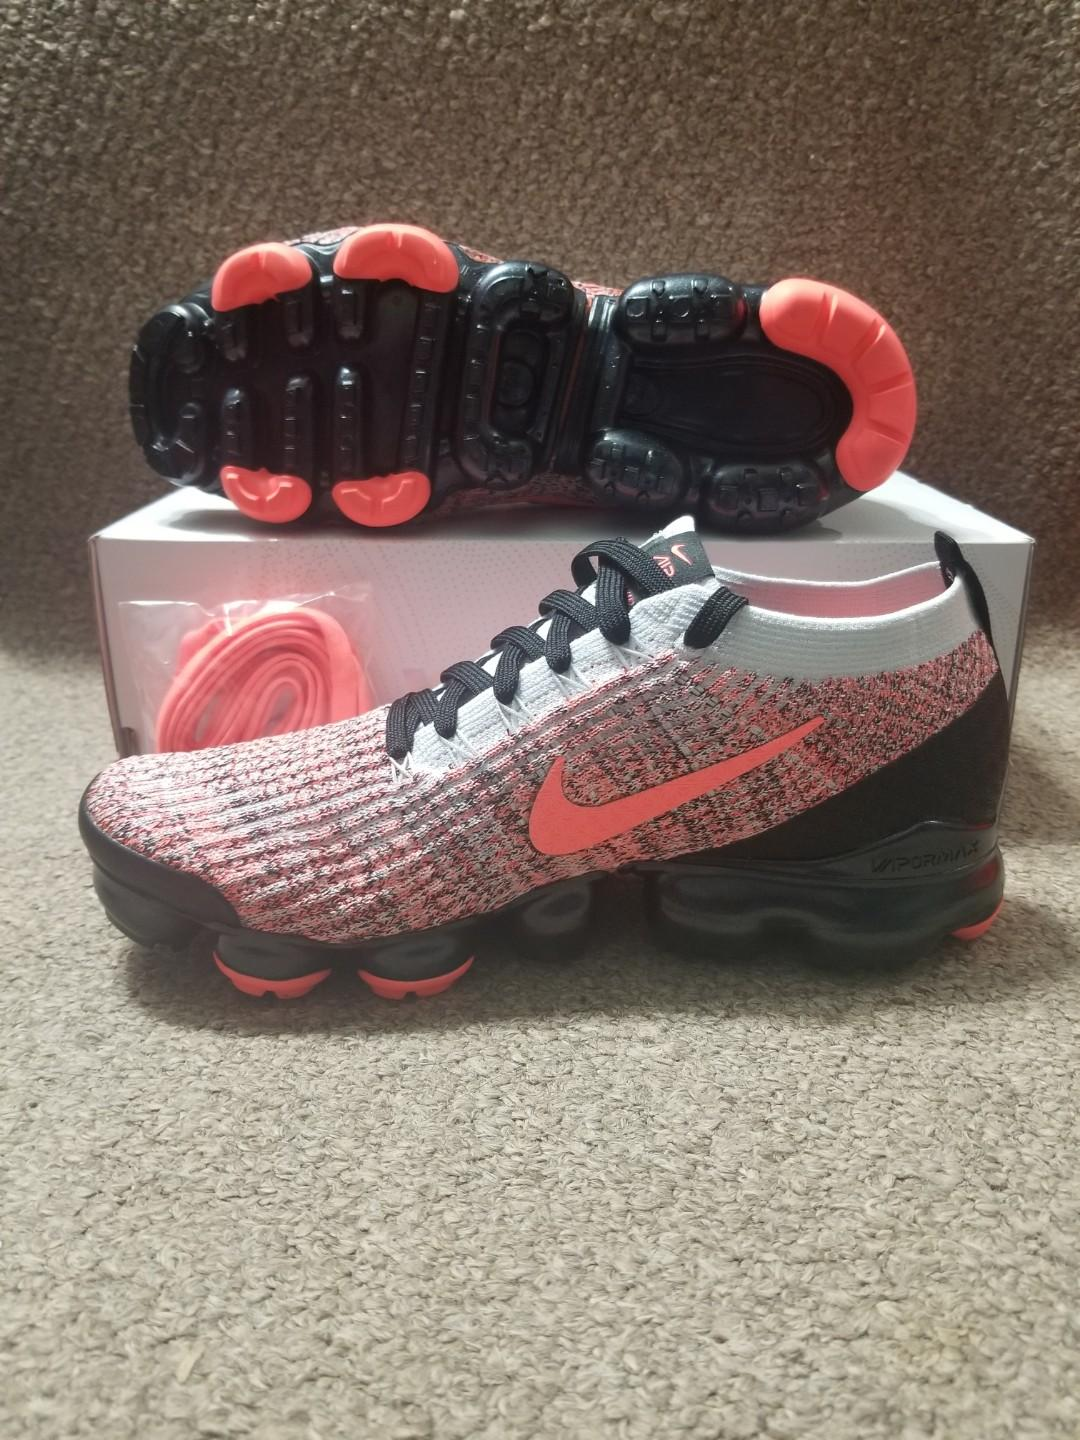 BRAND NEW Air Vapormax Flynit 3 Size 9 (Negotiable)